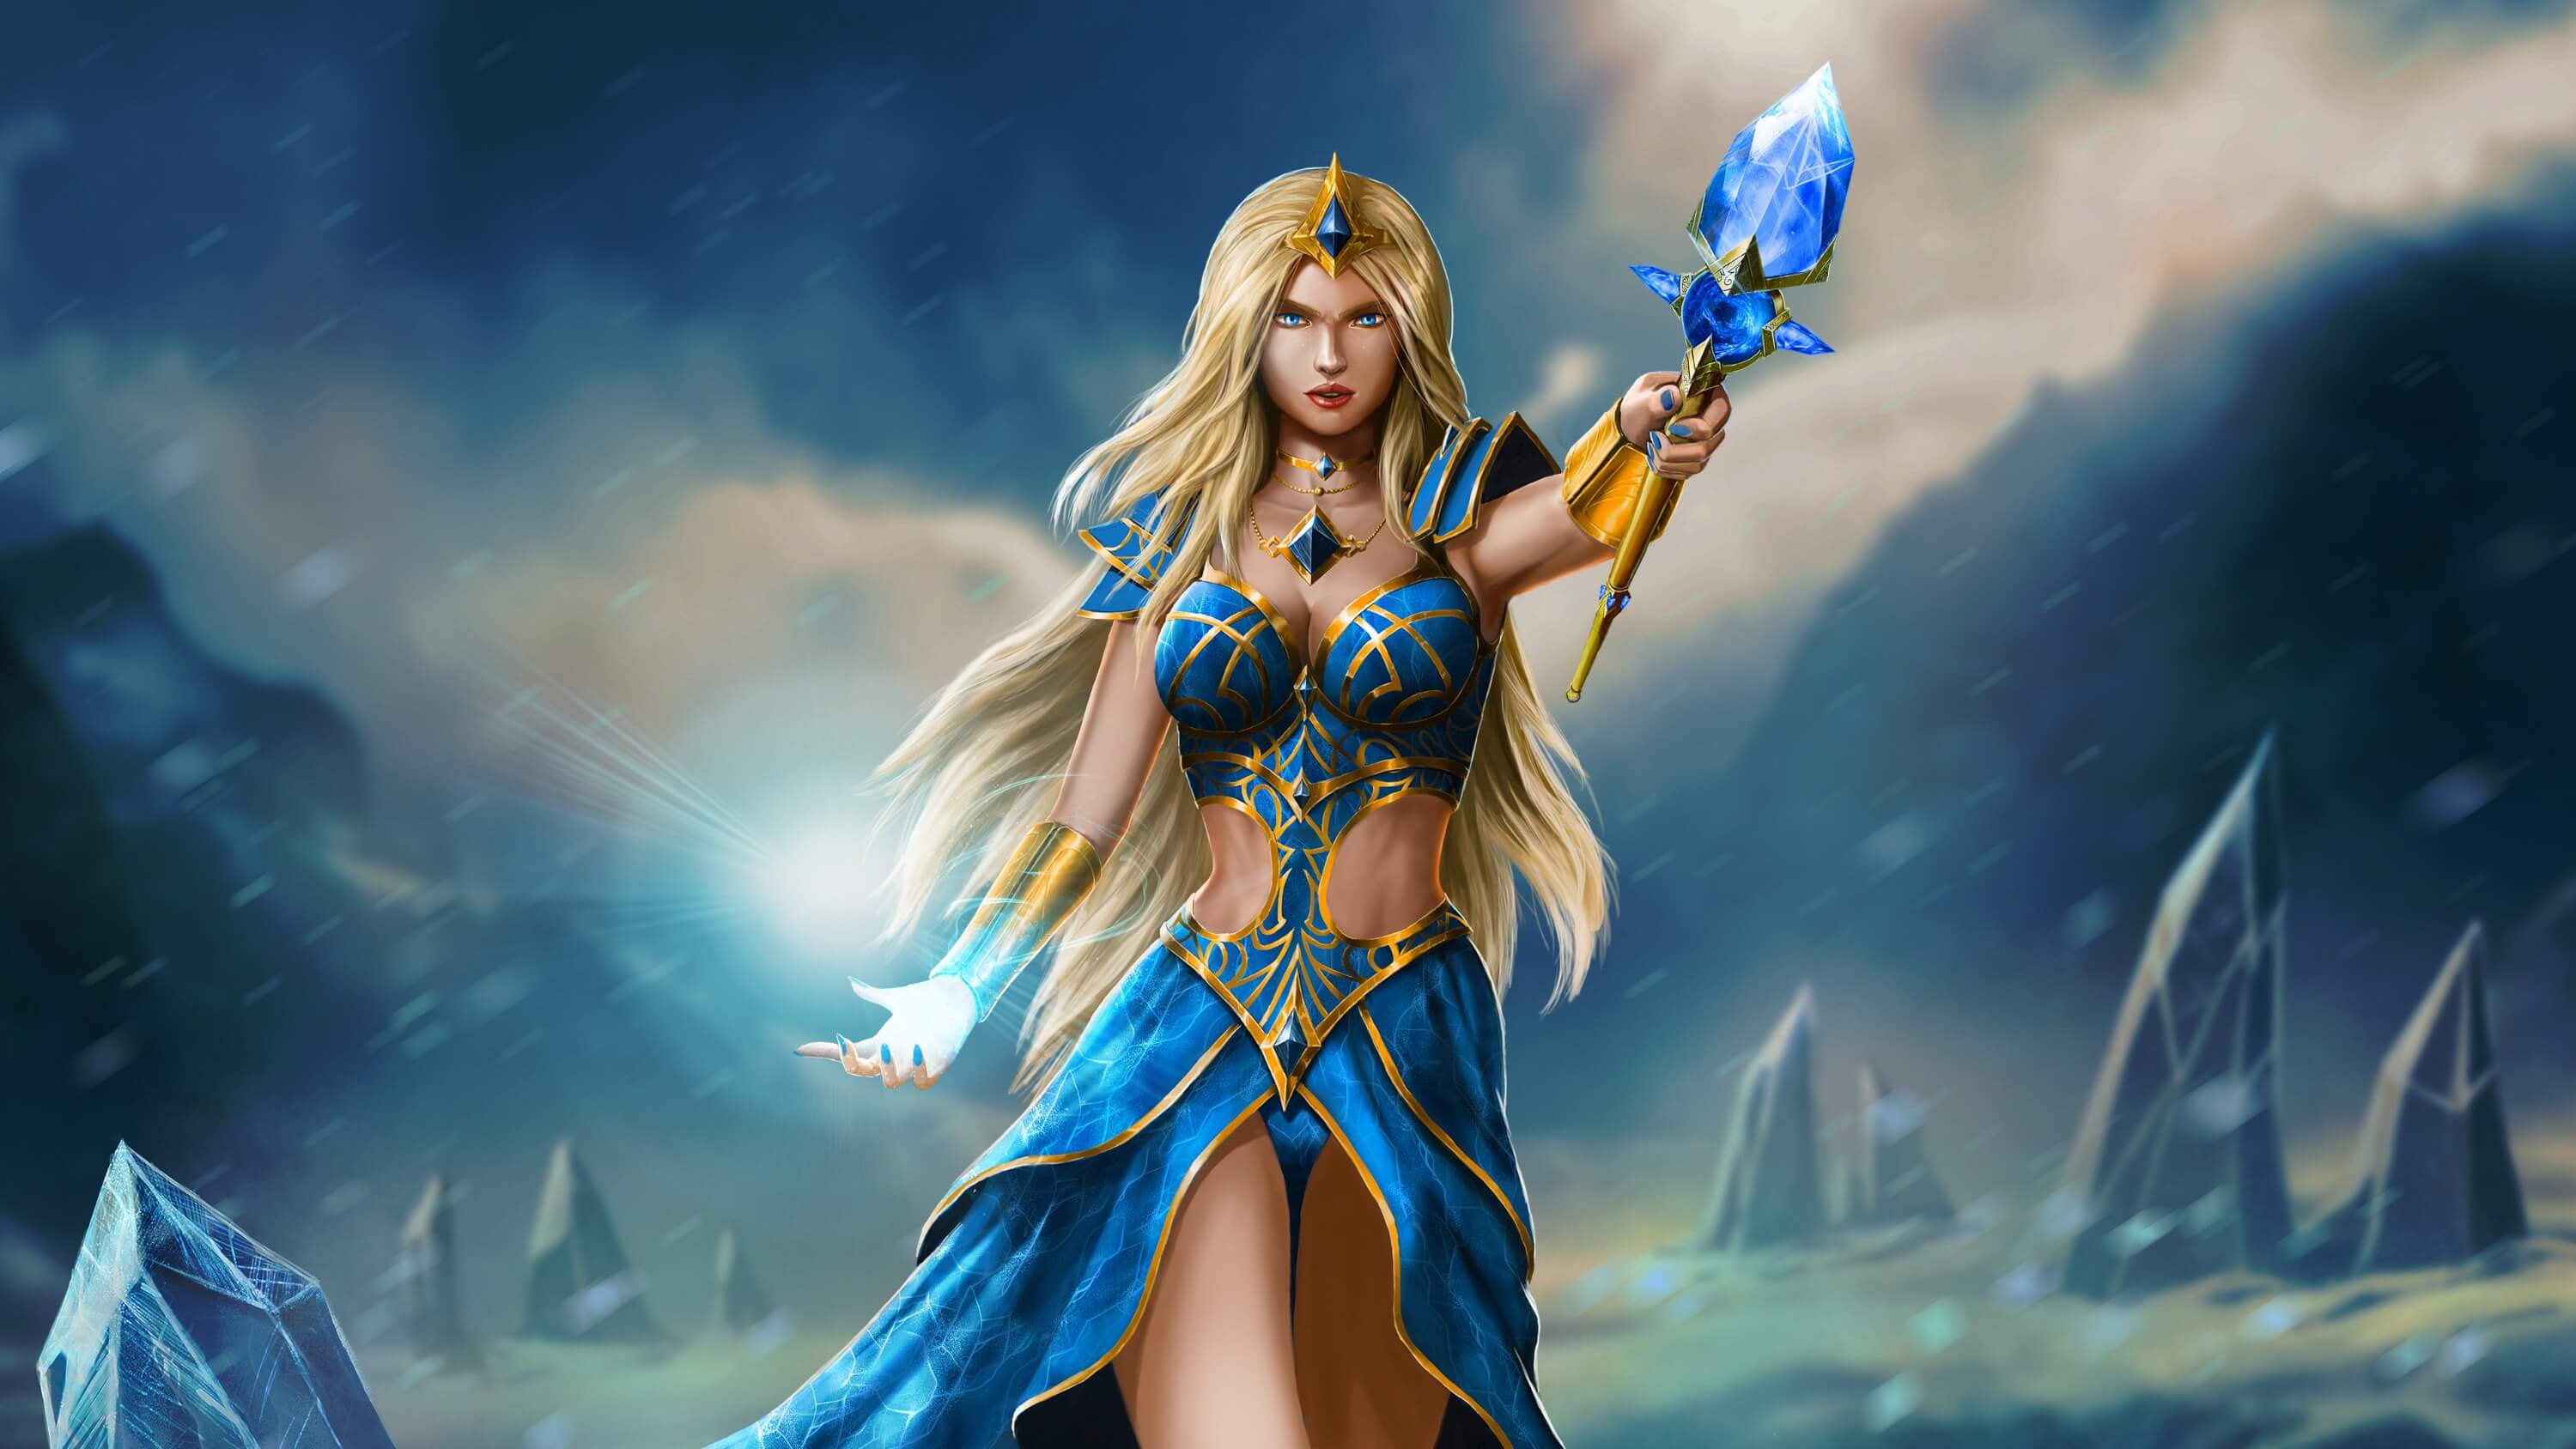 Enjin Welcomes Card Game Crystals of Fate